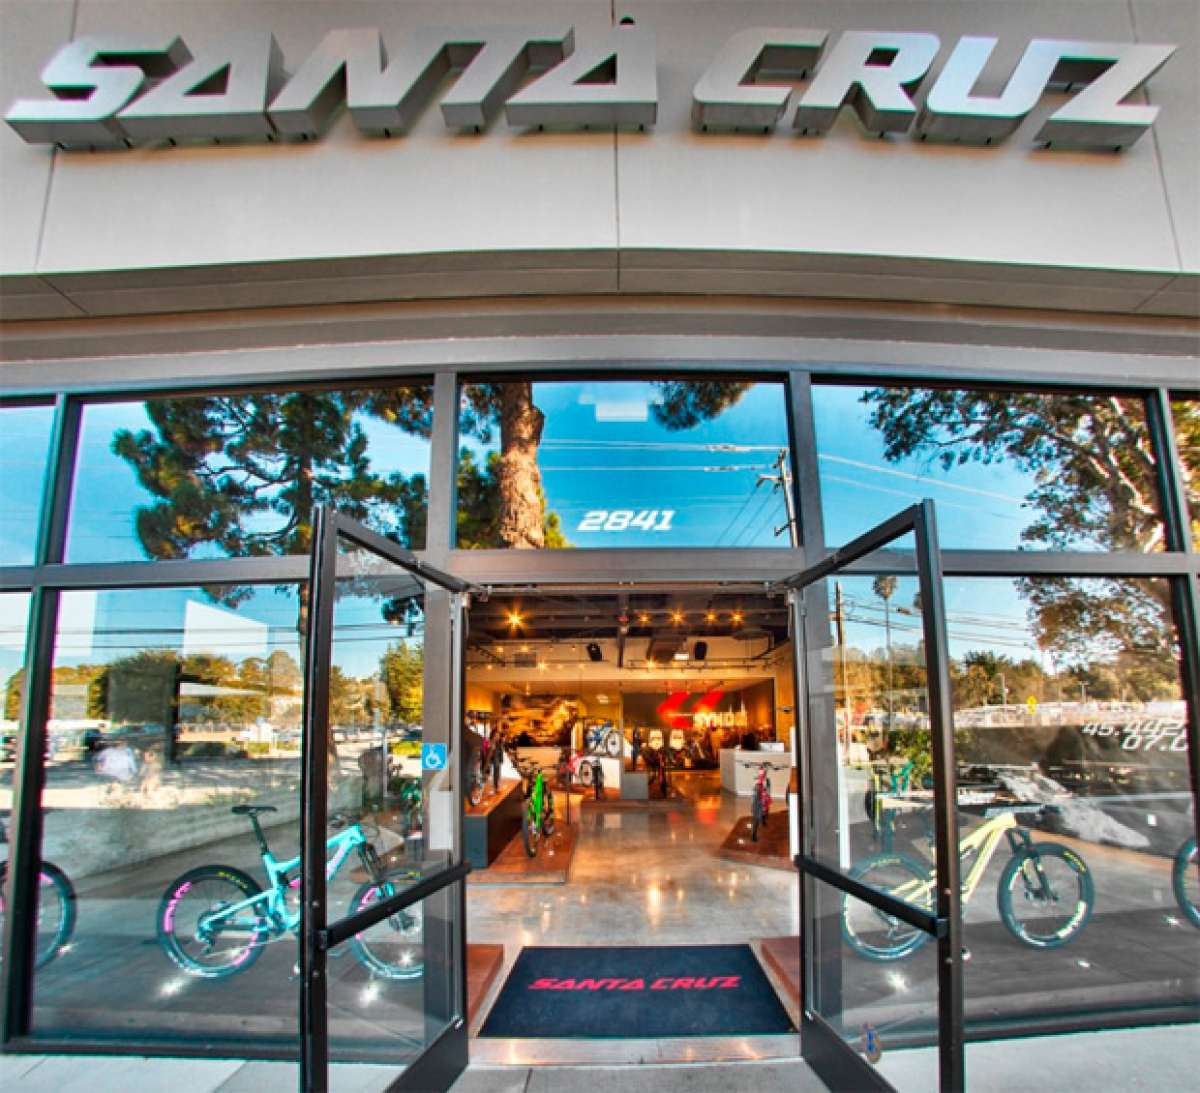 Visita virtual a la factoría de Santa Cruz Bicycles en California